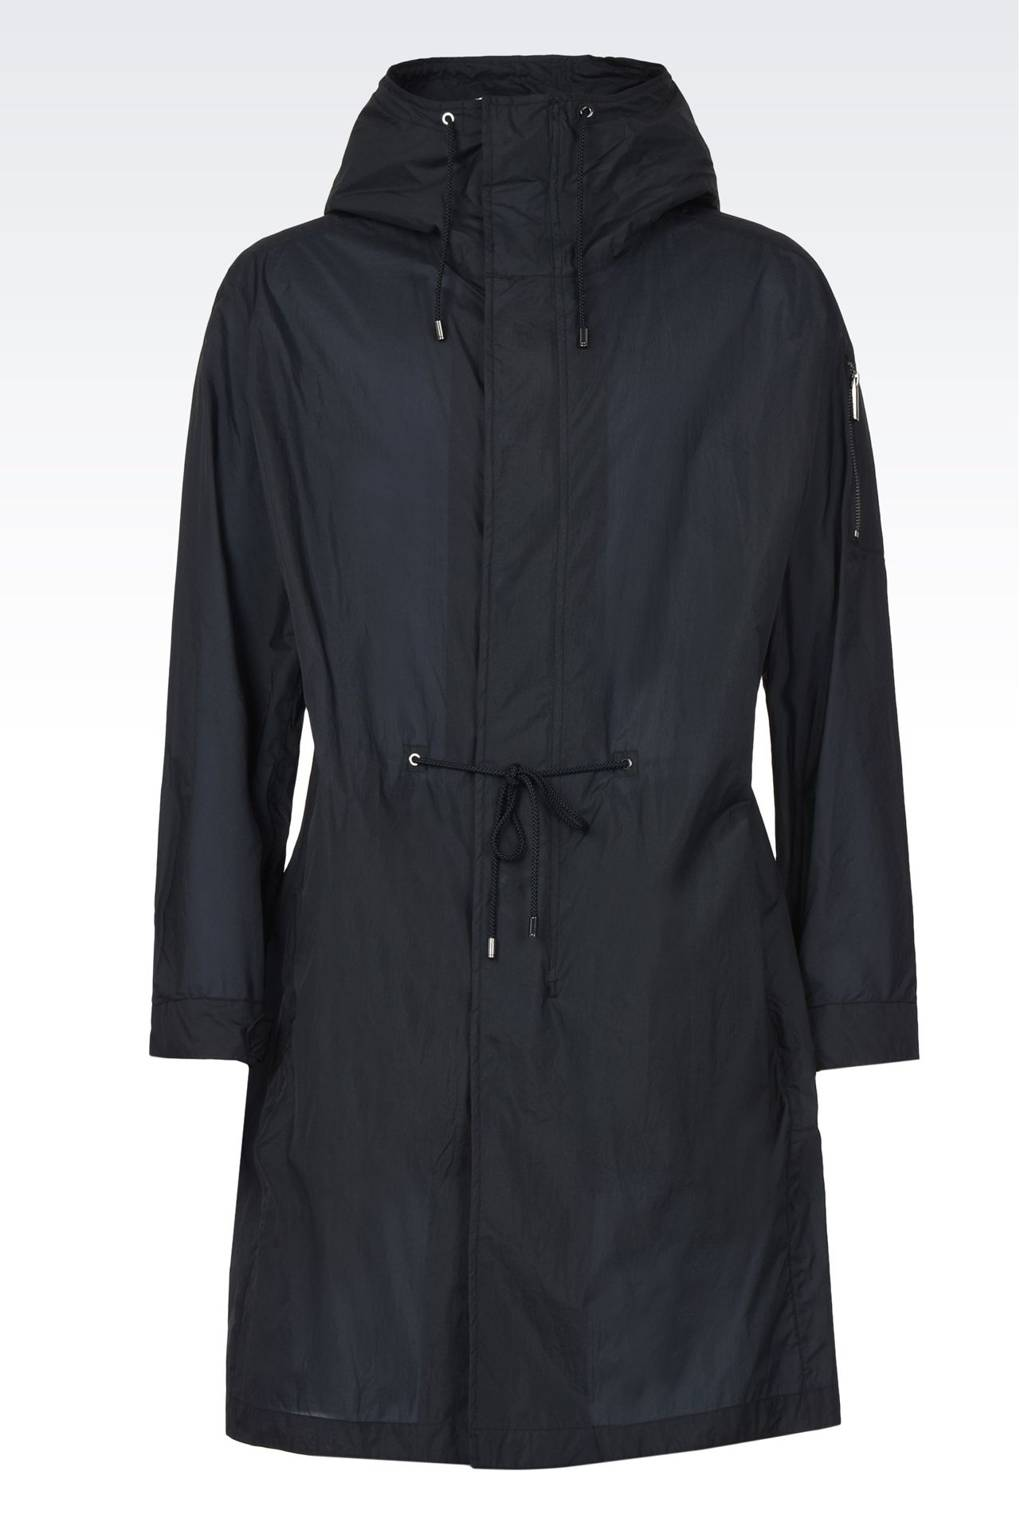 6 of the best lightweight raincoats 6 of the best lightweight raincoats new pictures